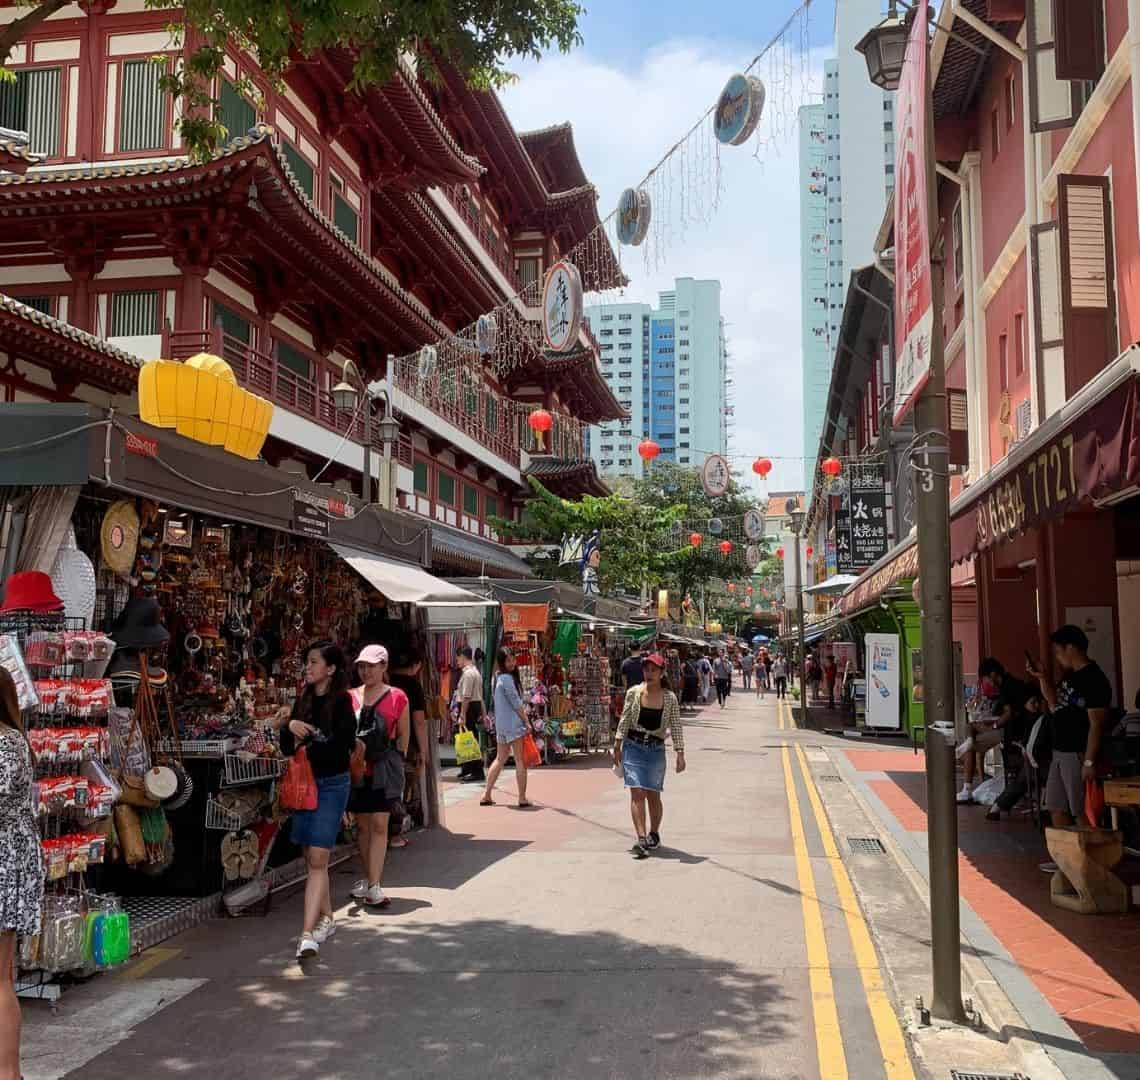 A Comprehensive Guide to Chinatown Singapore - Street view of some stalls along a street in Chinatown. They are selling all manner of tourist tat and there are a few tourists on the street. On the upper left above the stalls are the red walls of Buddha Tooth Relic Temple with its Chinese style roofs.